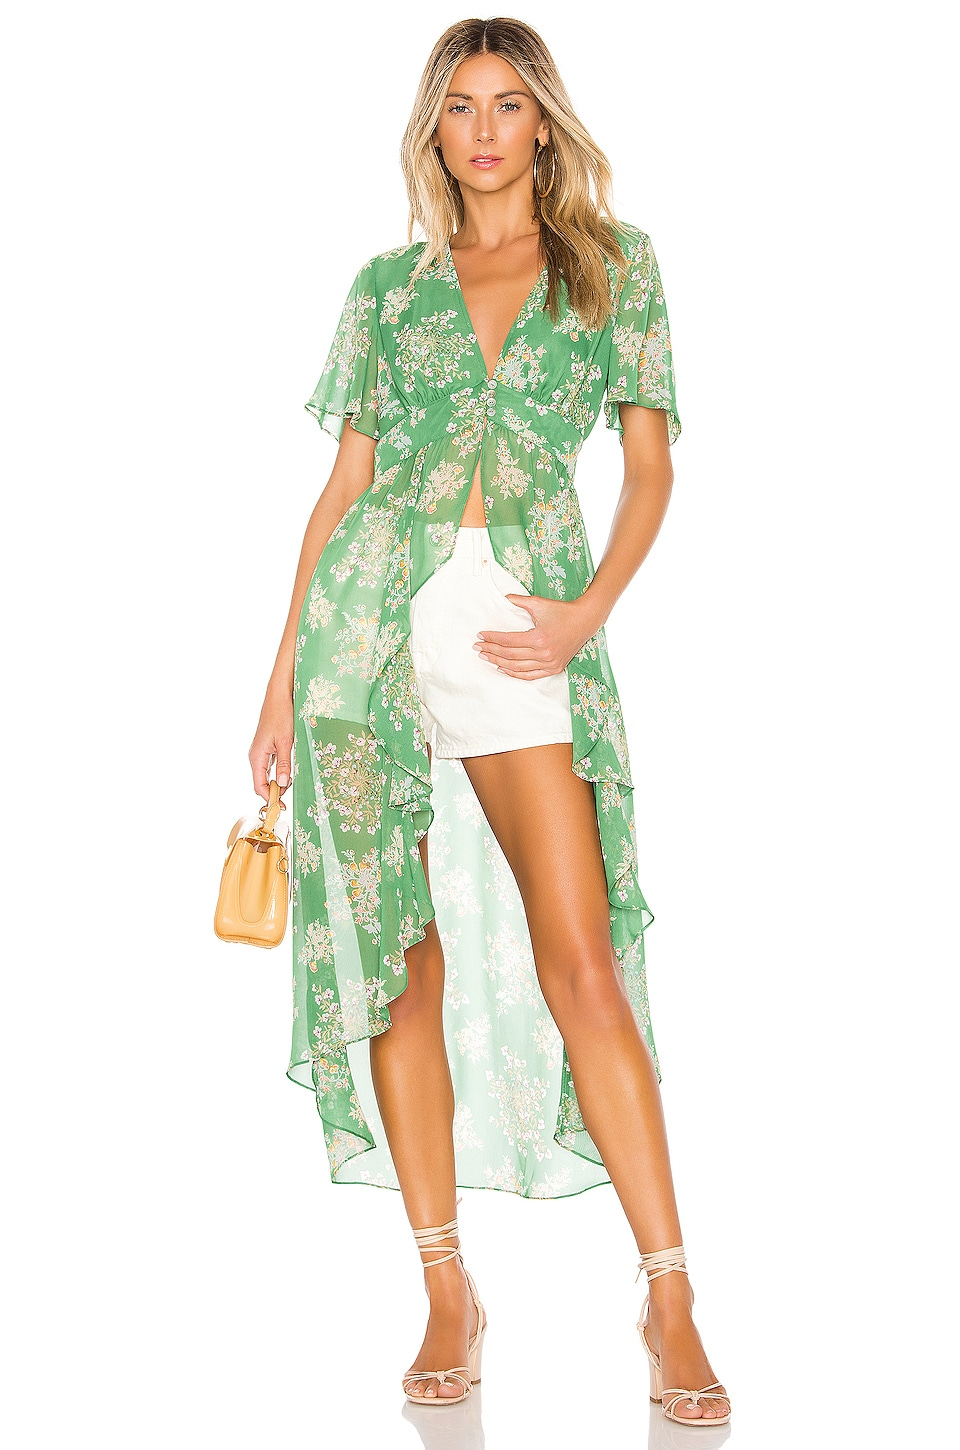 J.O.A. Deep V Duster Blouse in Green Floral